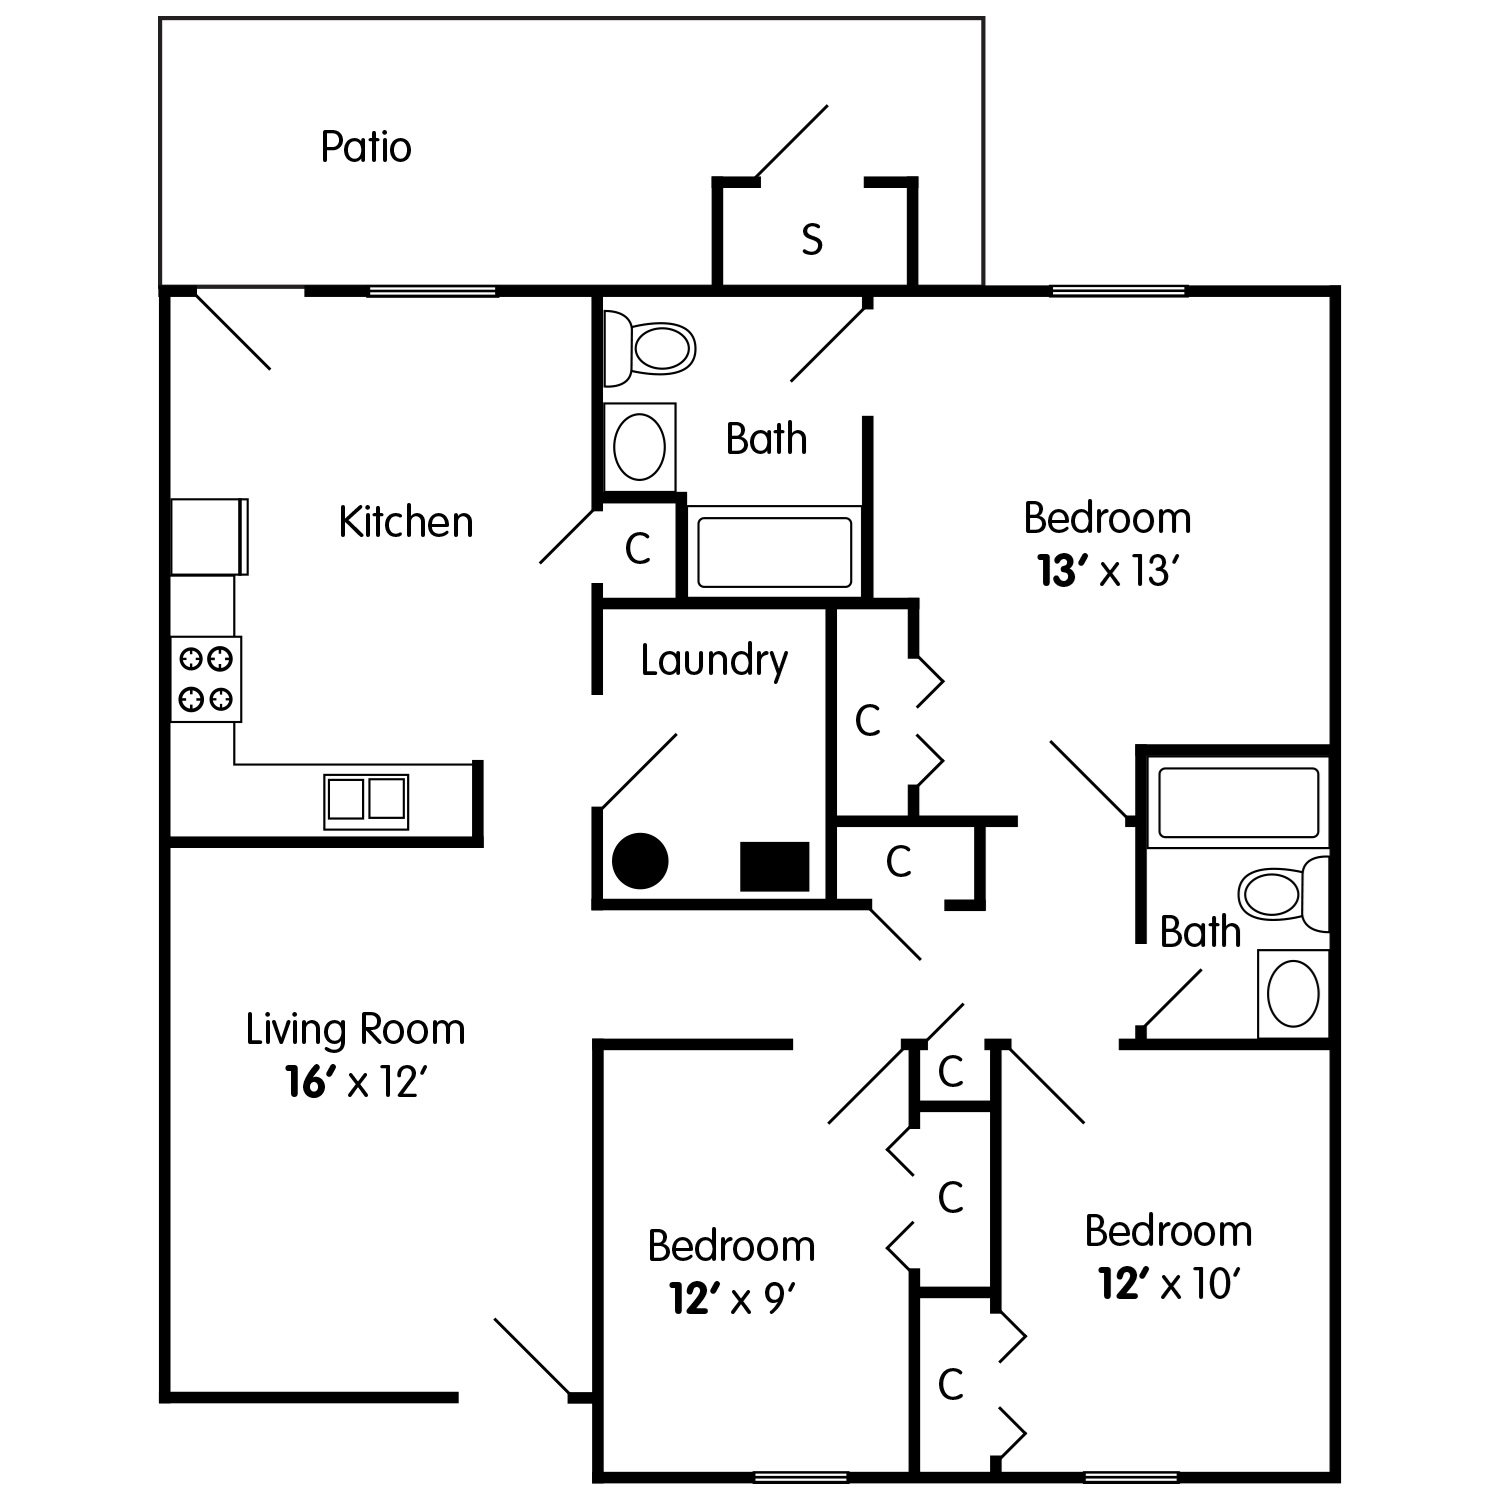 Floor Plans Of Timber Creek In Milford, OH